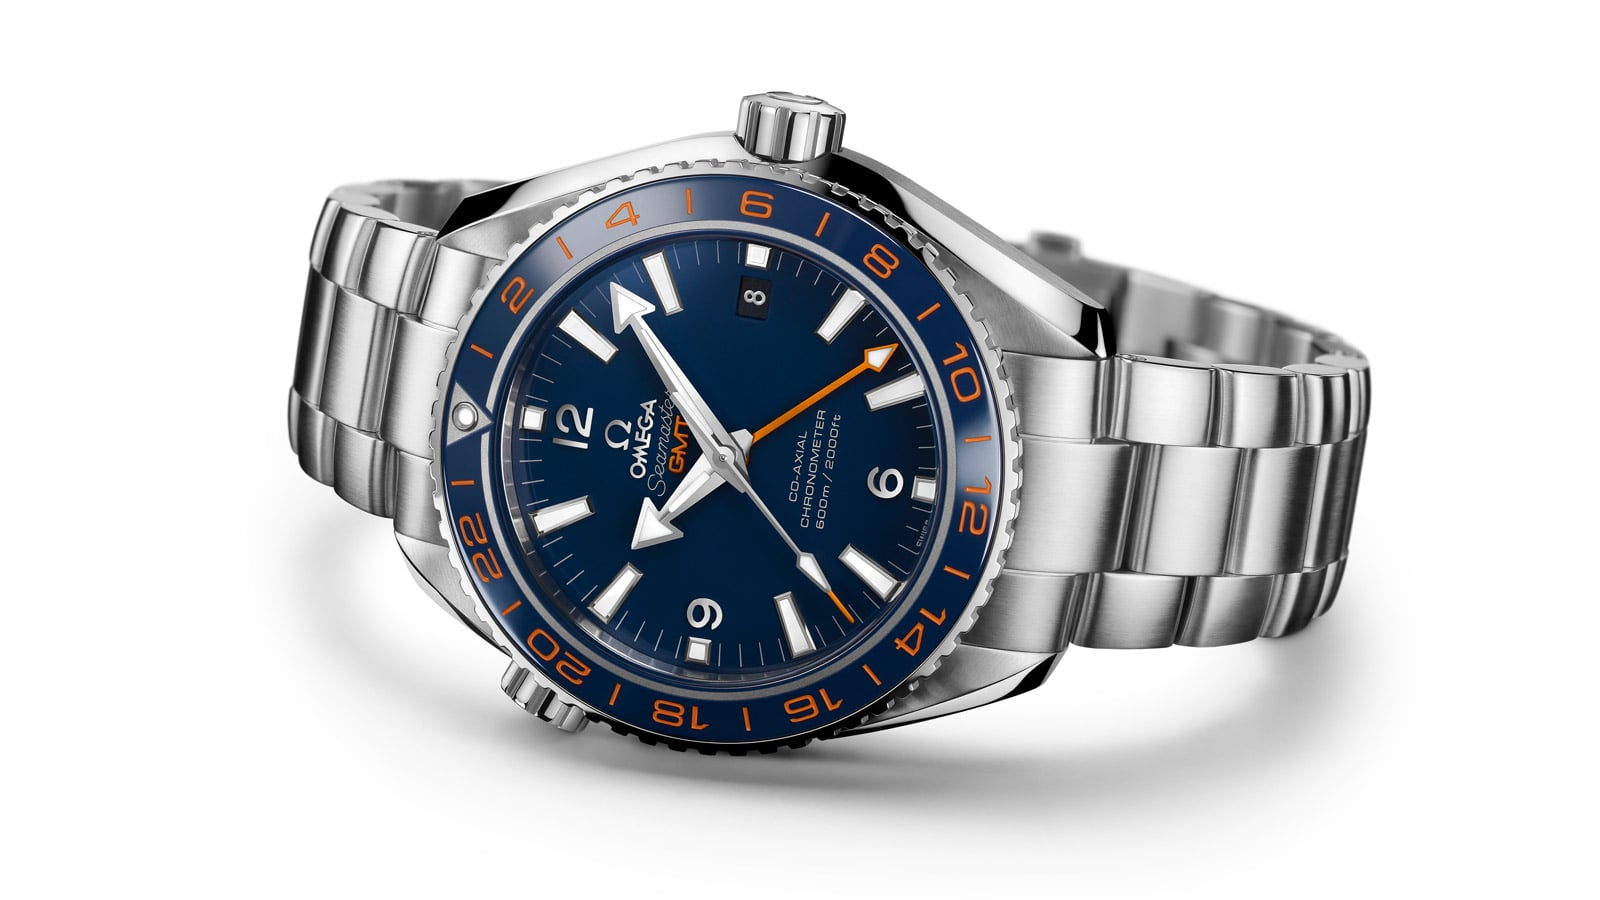 The Seamaster Planet Ocean 600M GMT GoodPlanet